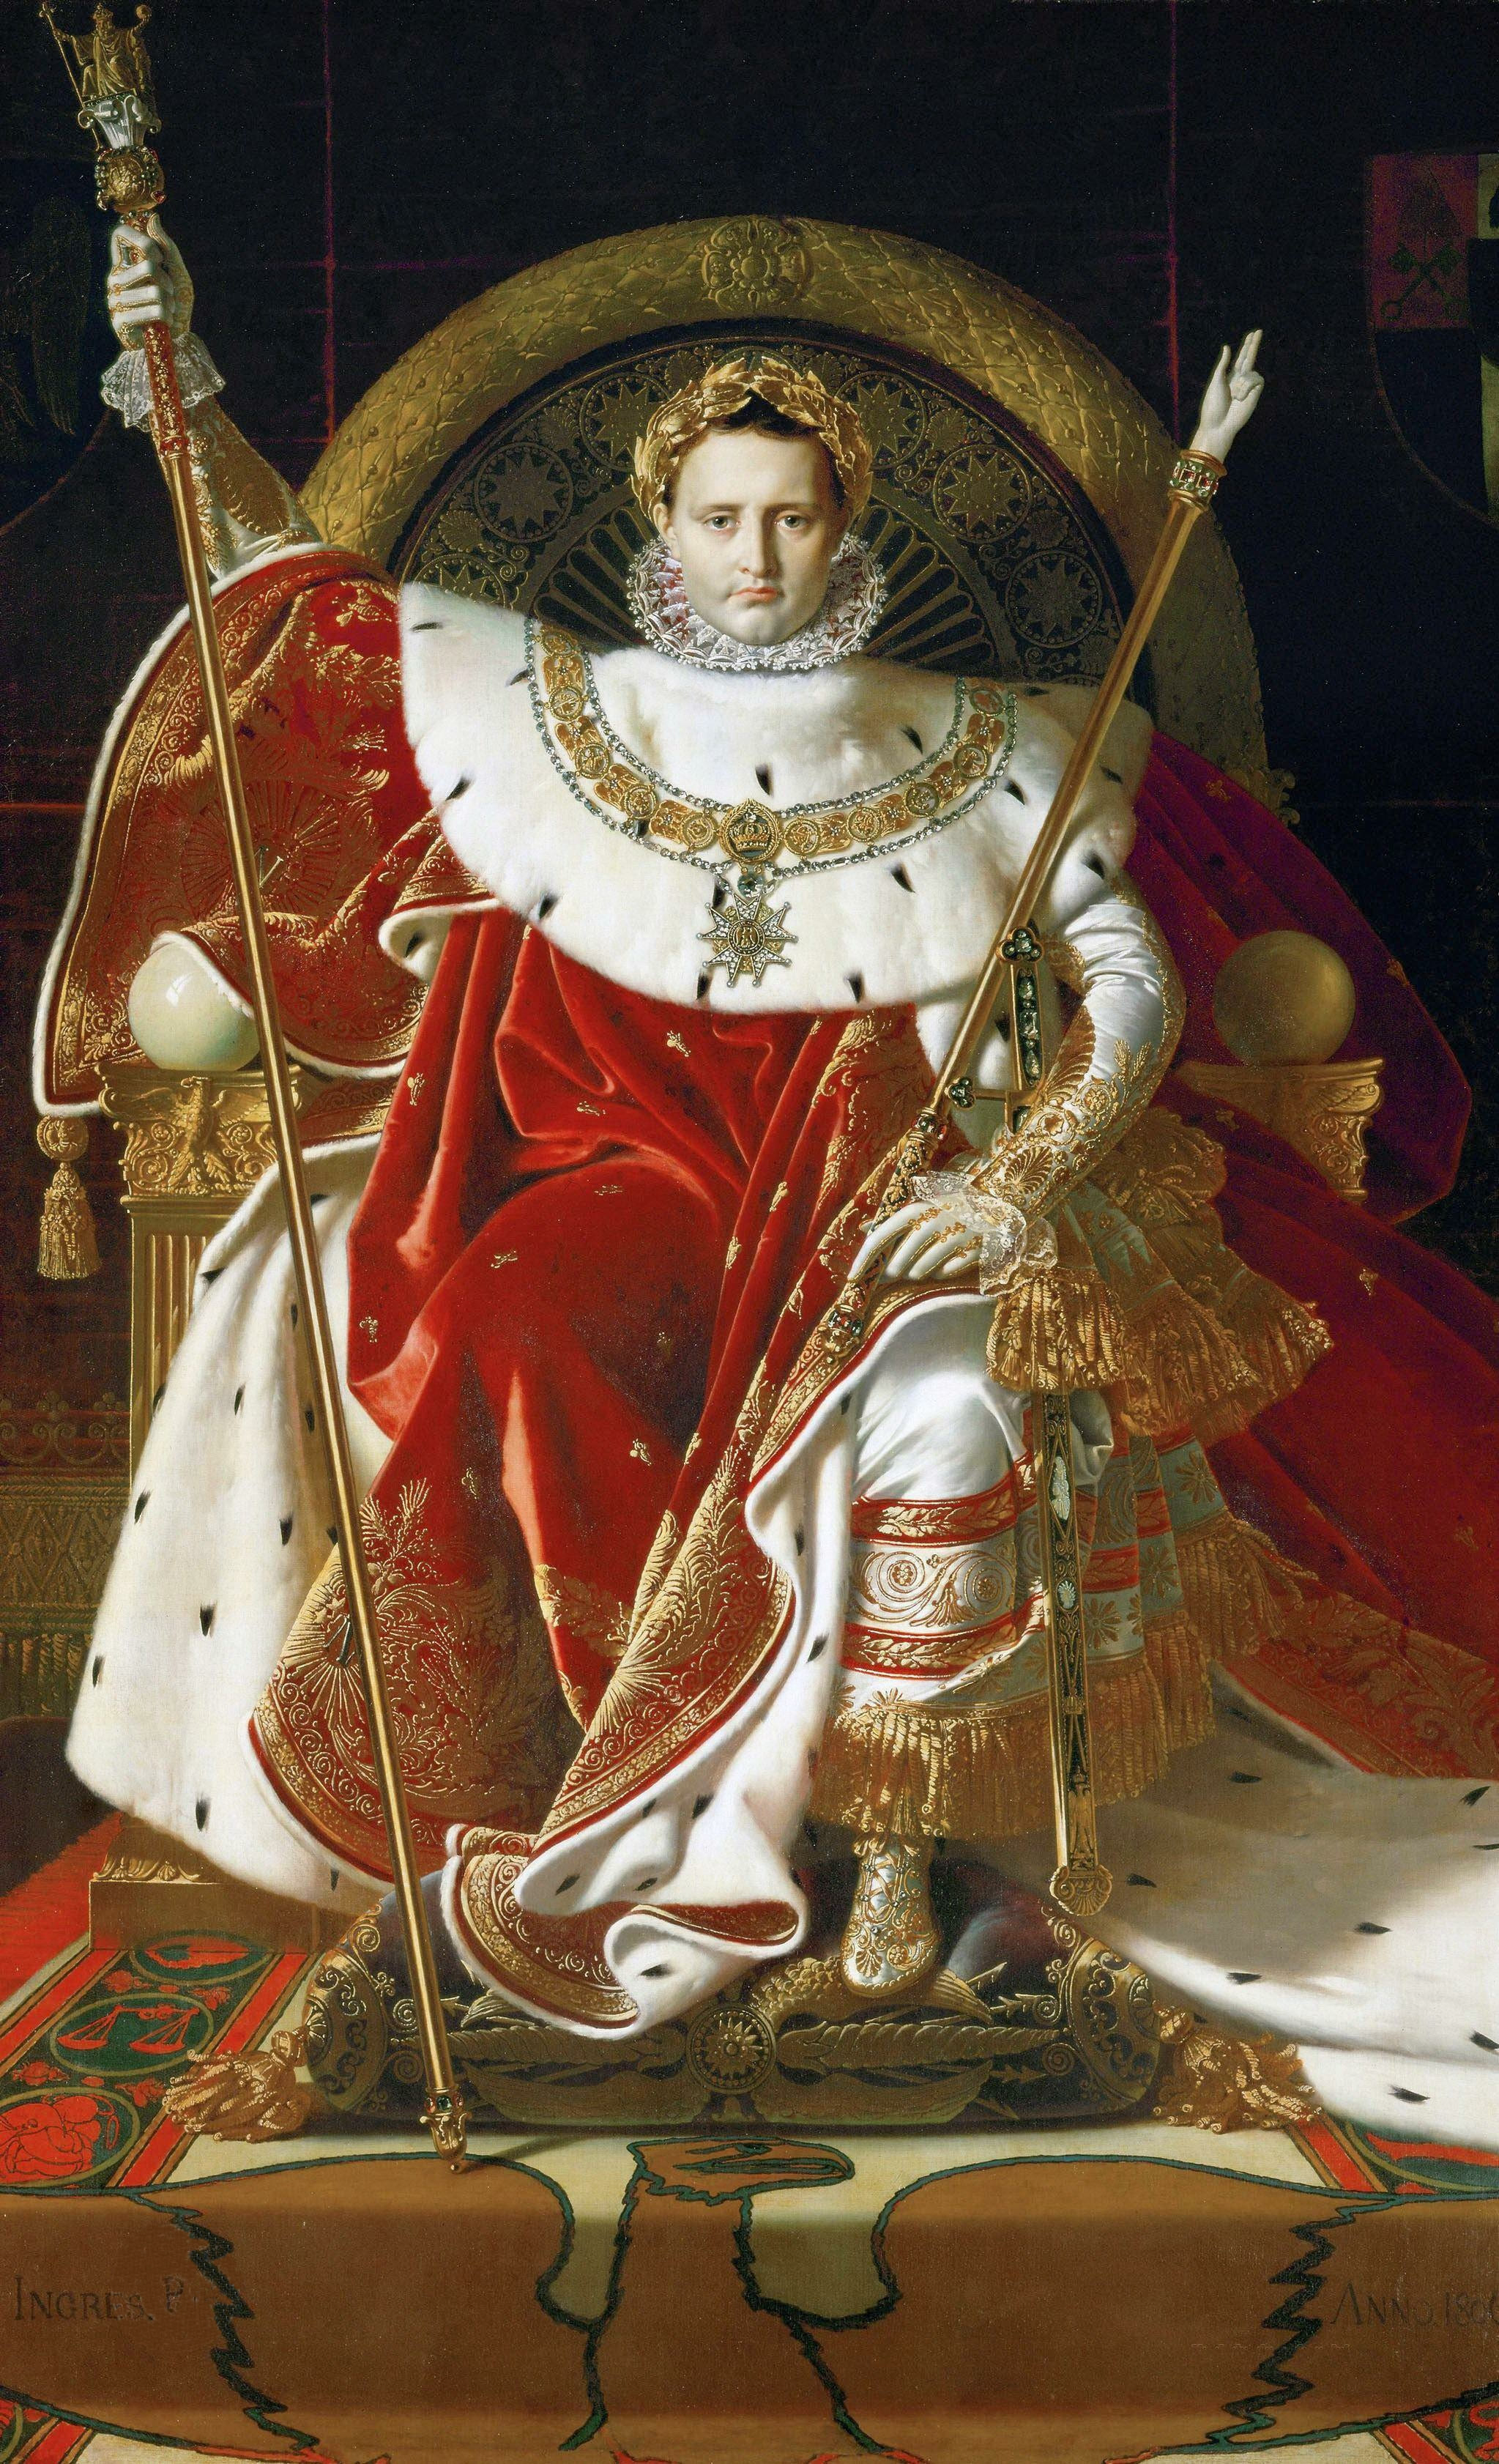 Hd wallpaper arema - File Ingres Napoleon On His Imperial Throne Jpg Wikipedia